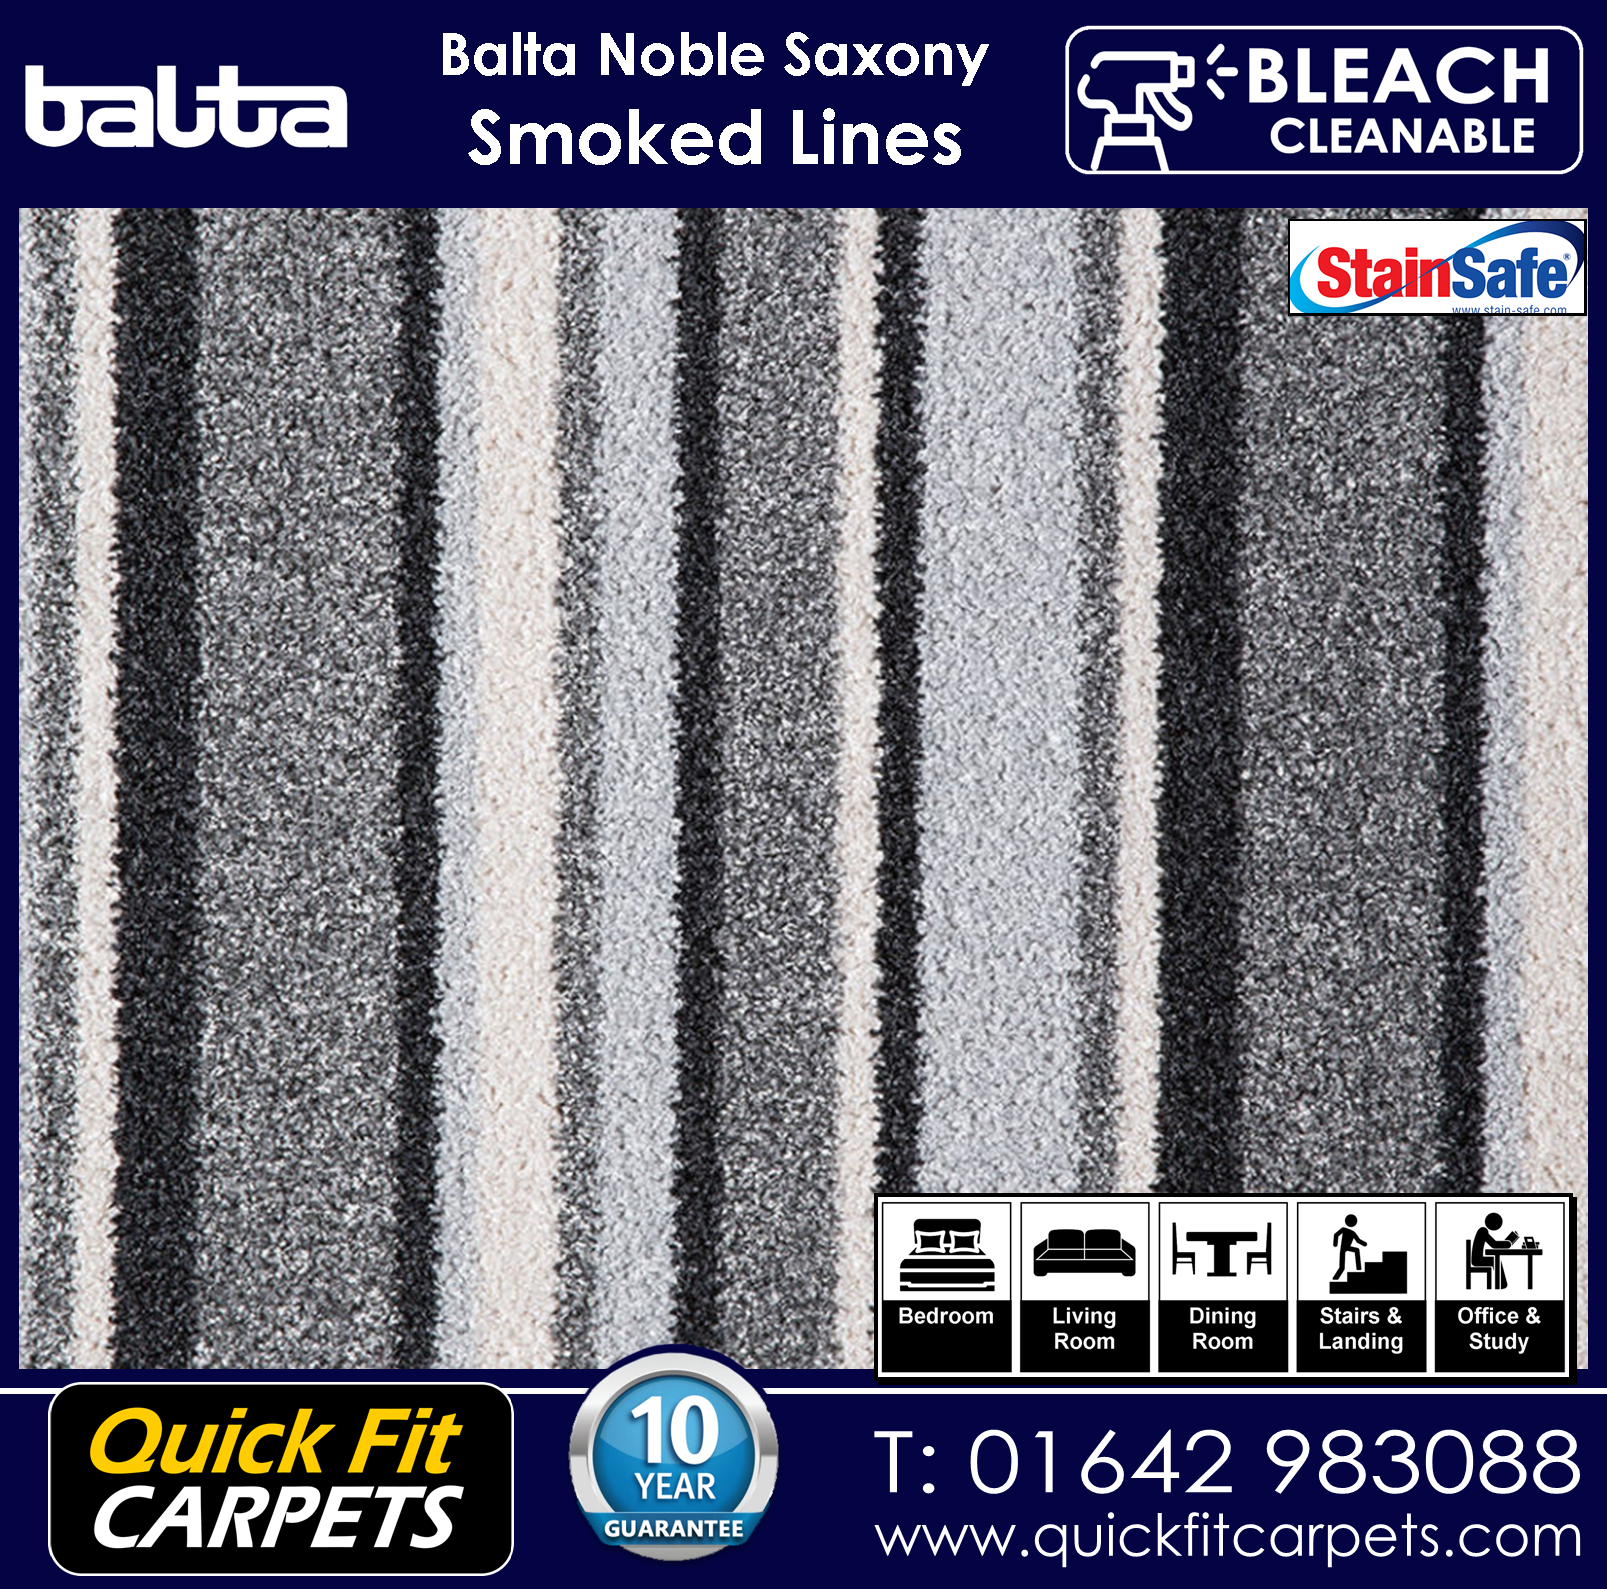 Quick Fit Carpets Balta Luxury Pile Smoked Lines